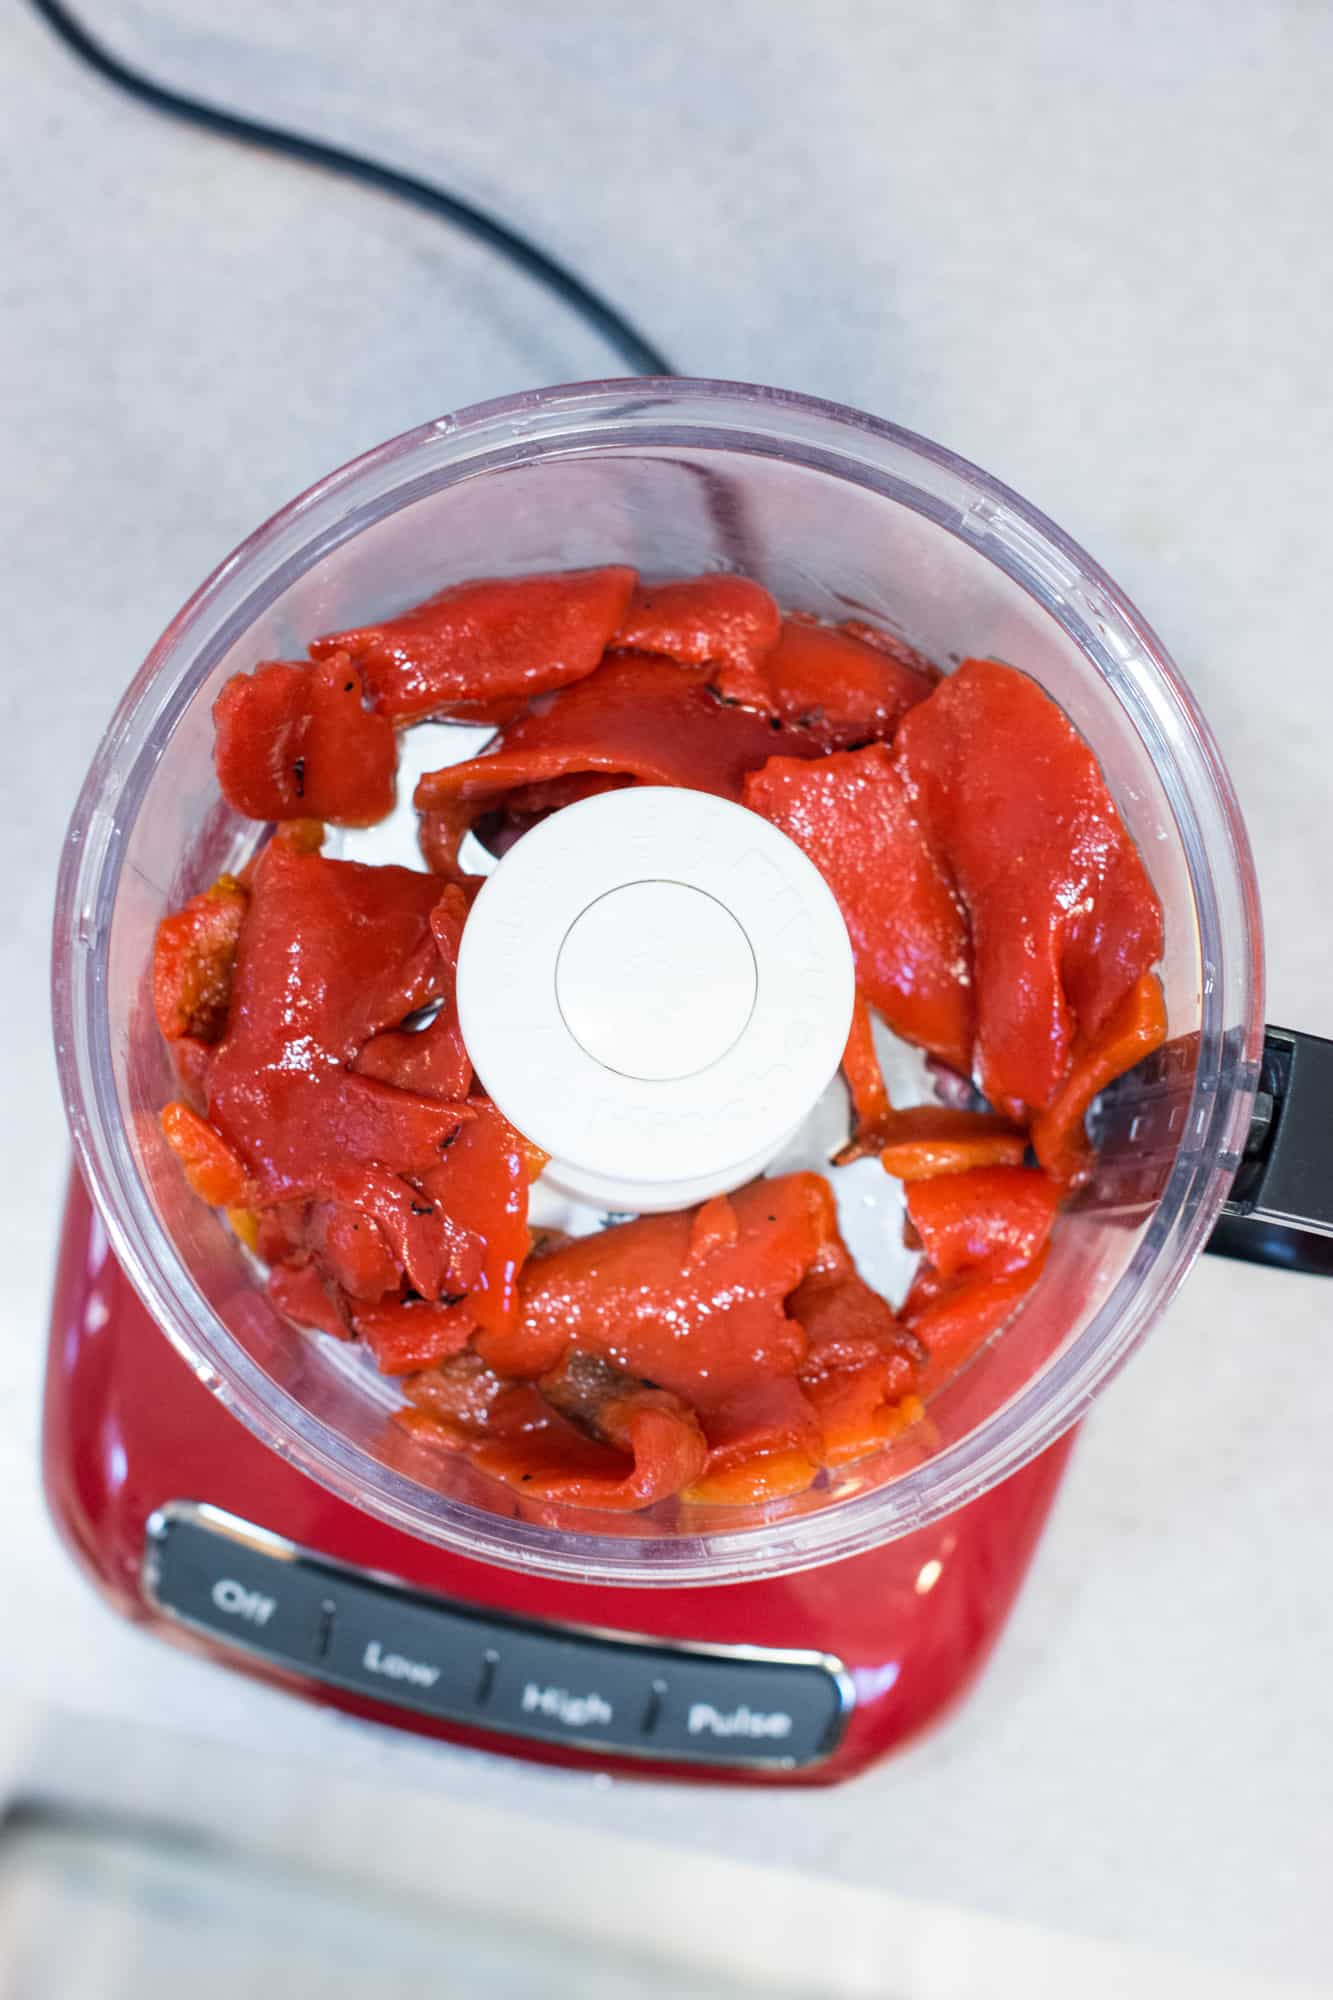 roasted red peppers in a food processor